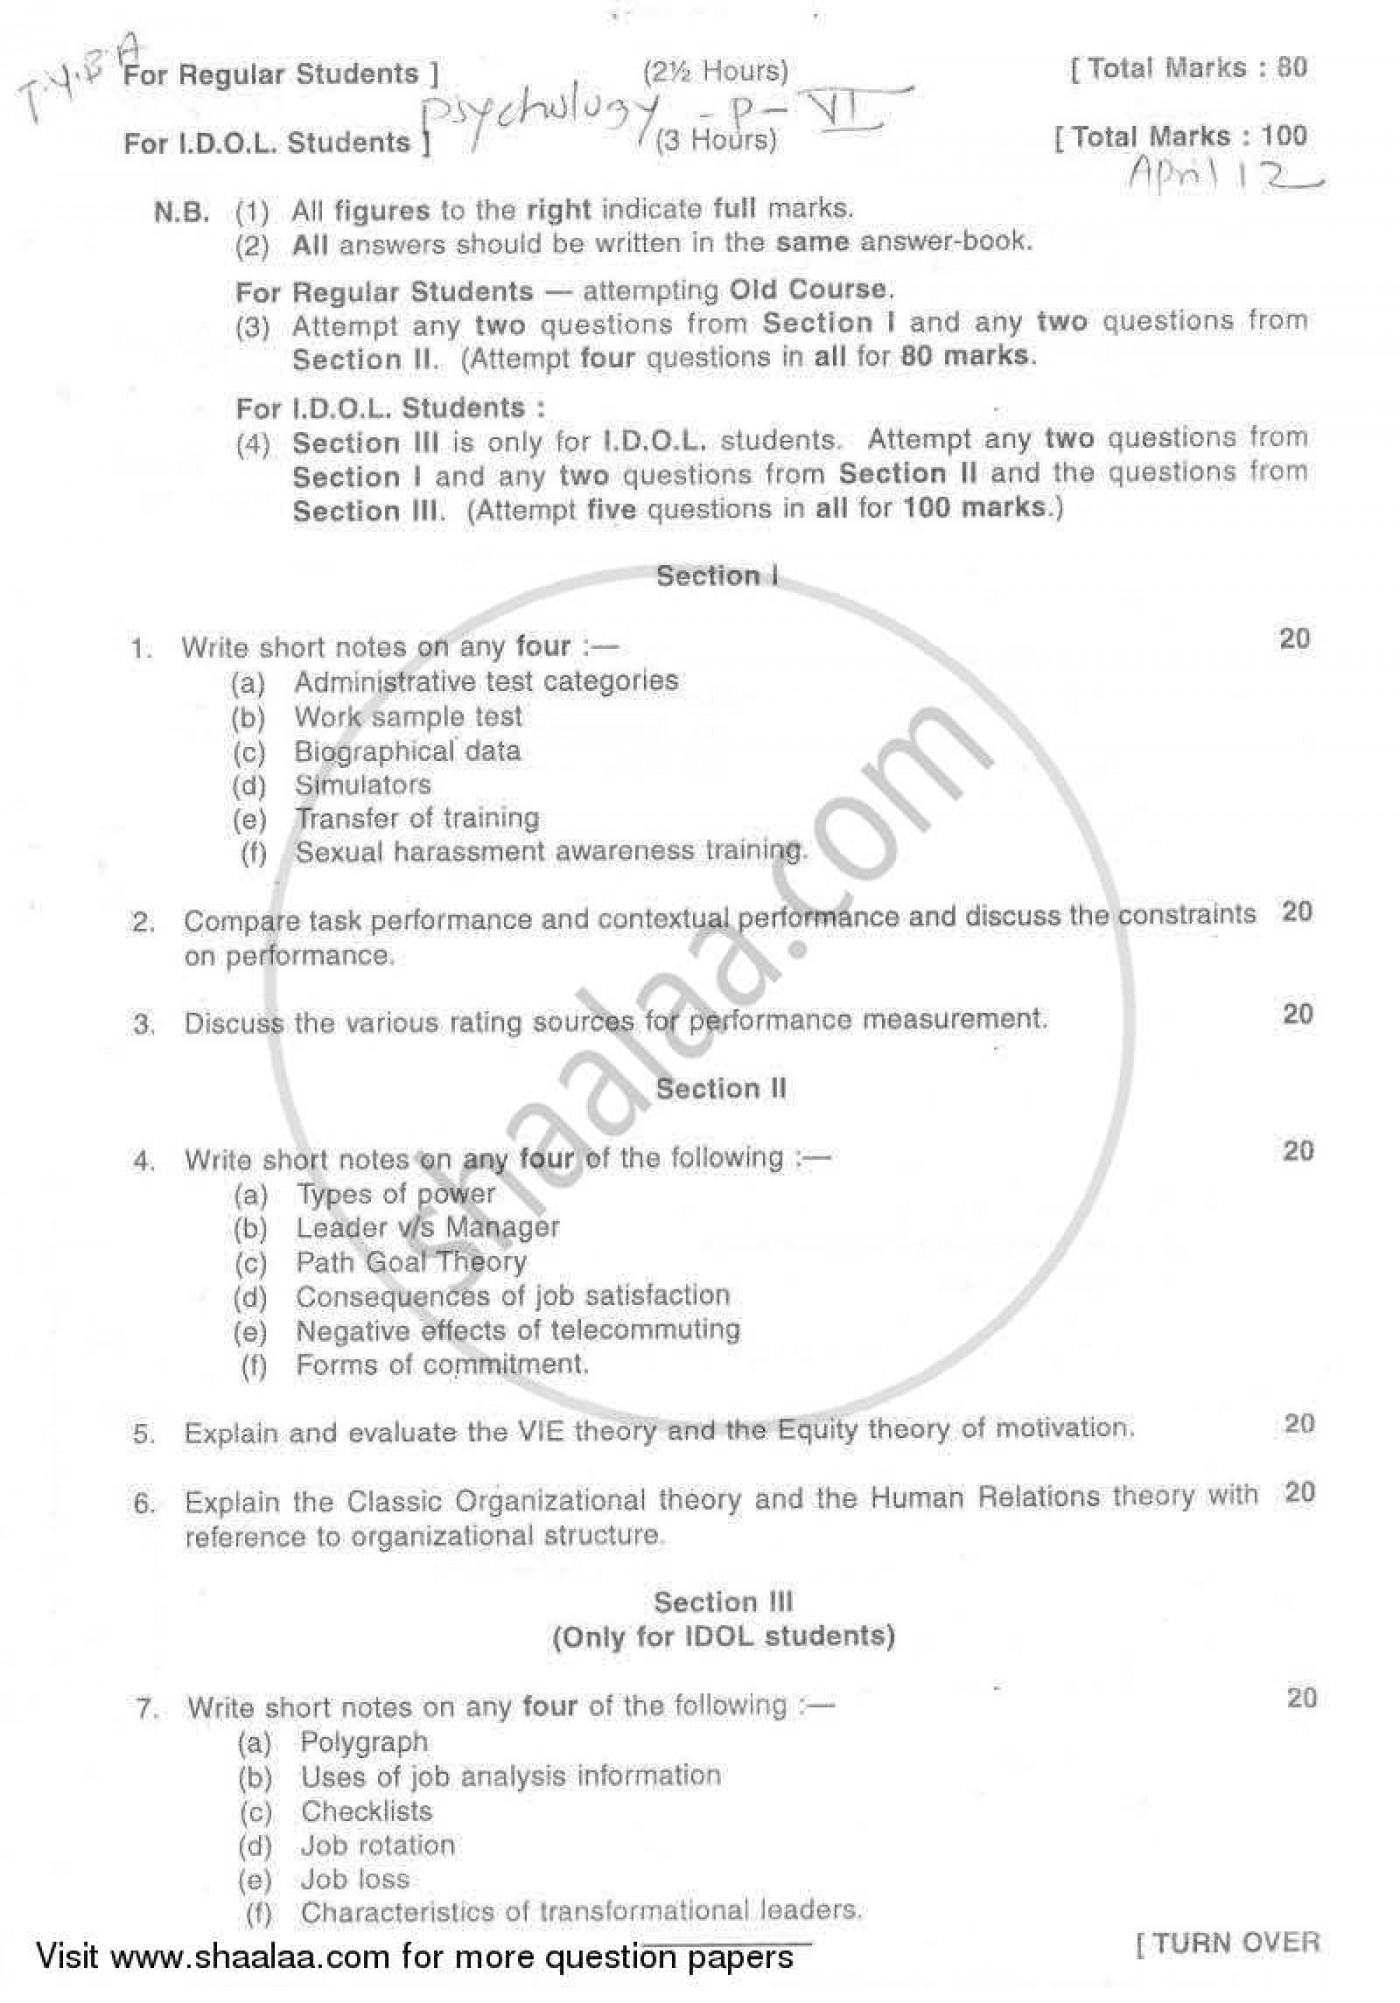 017 Psychologyearch Paper On Dreams University Of Mumbai Bachelor Industrial Organizational T Y Yearly Pattern Semester Tyba 2011 29a03925dfc524f2aa4cb10e4d3da996a Singular Psychology Research Questions Topics 1400